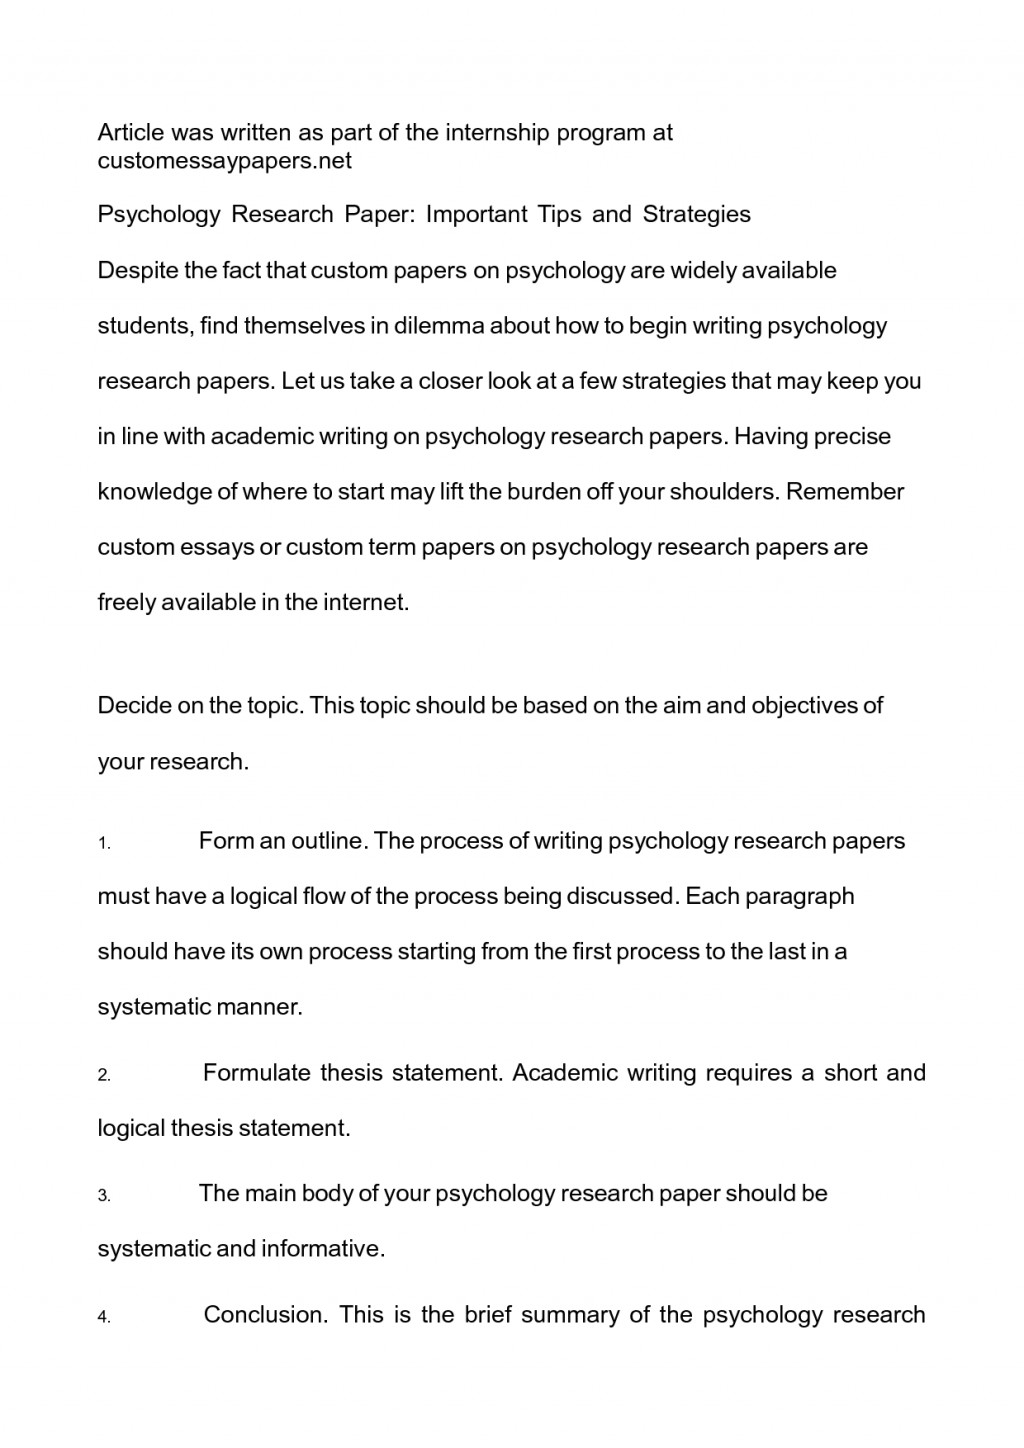 007 Psychology Research Paper Writing Services College Papers Stirring Written Large